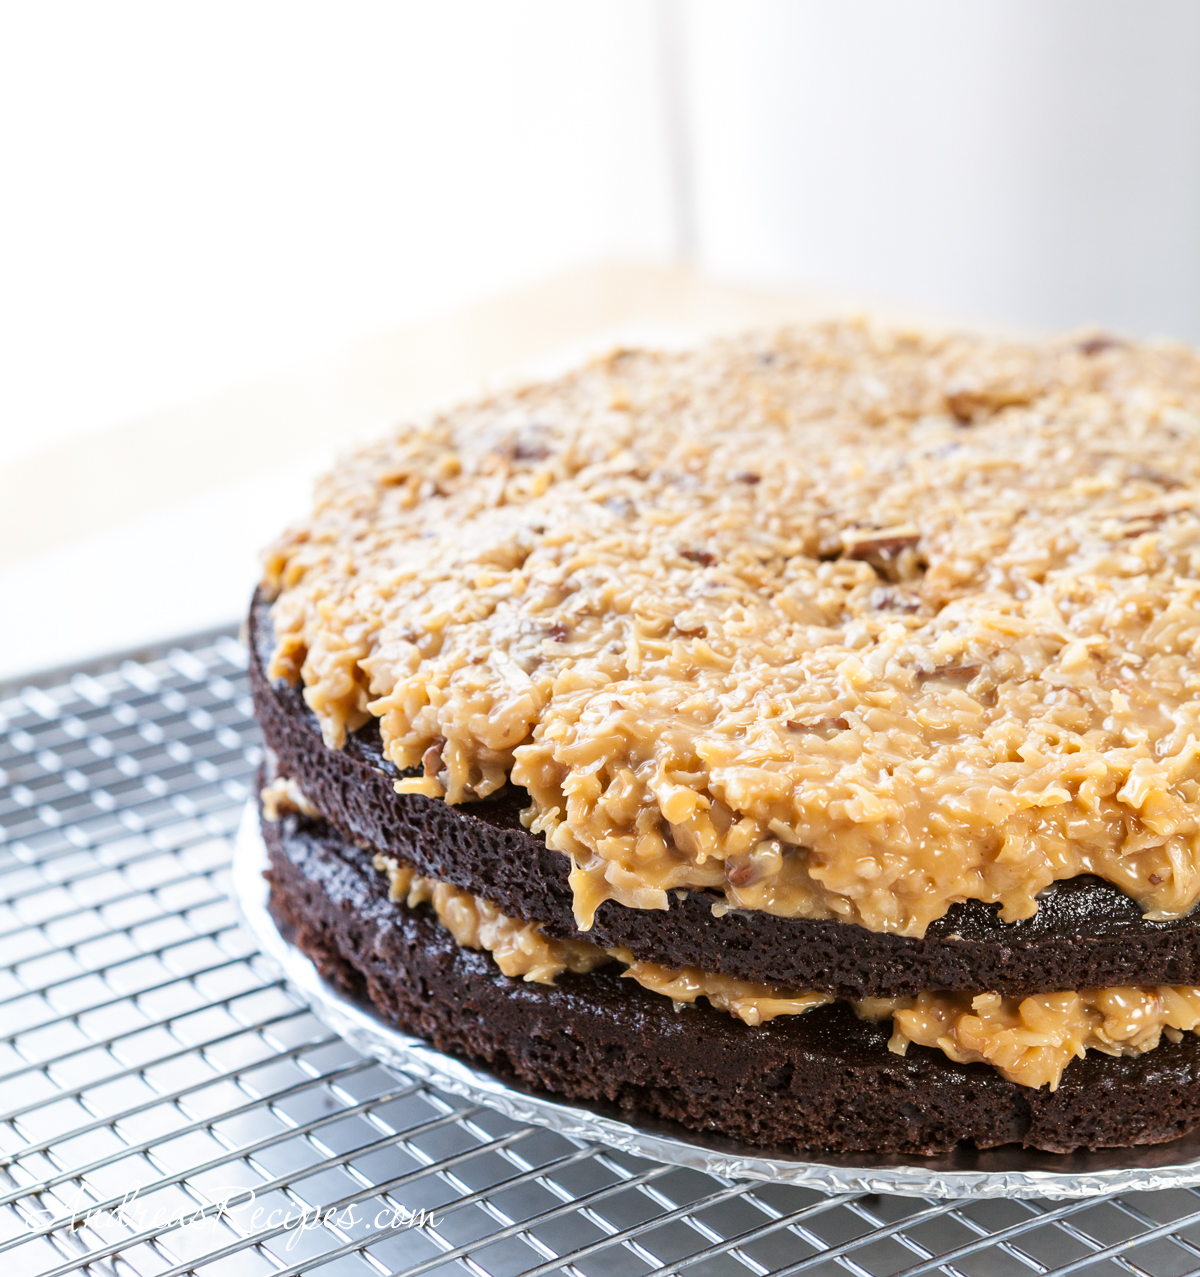 Dulce de leche layer, Inside-Out German Chocolate Cake - Andrea Meyers